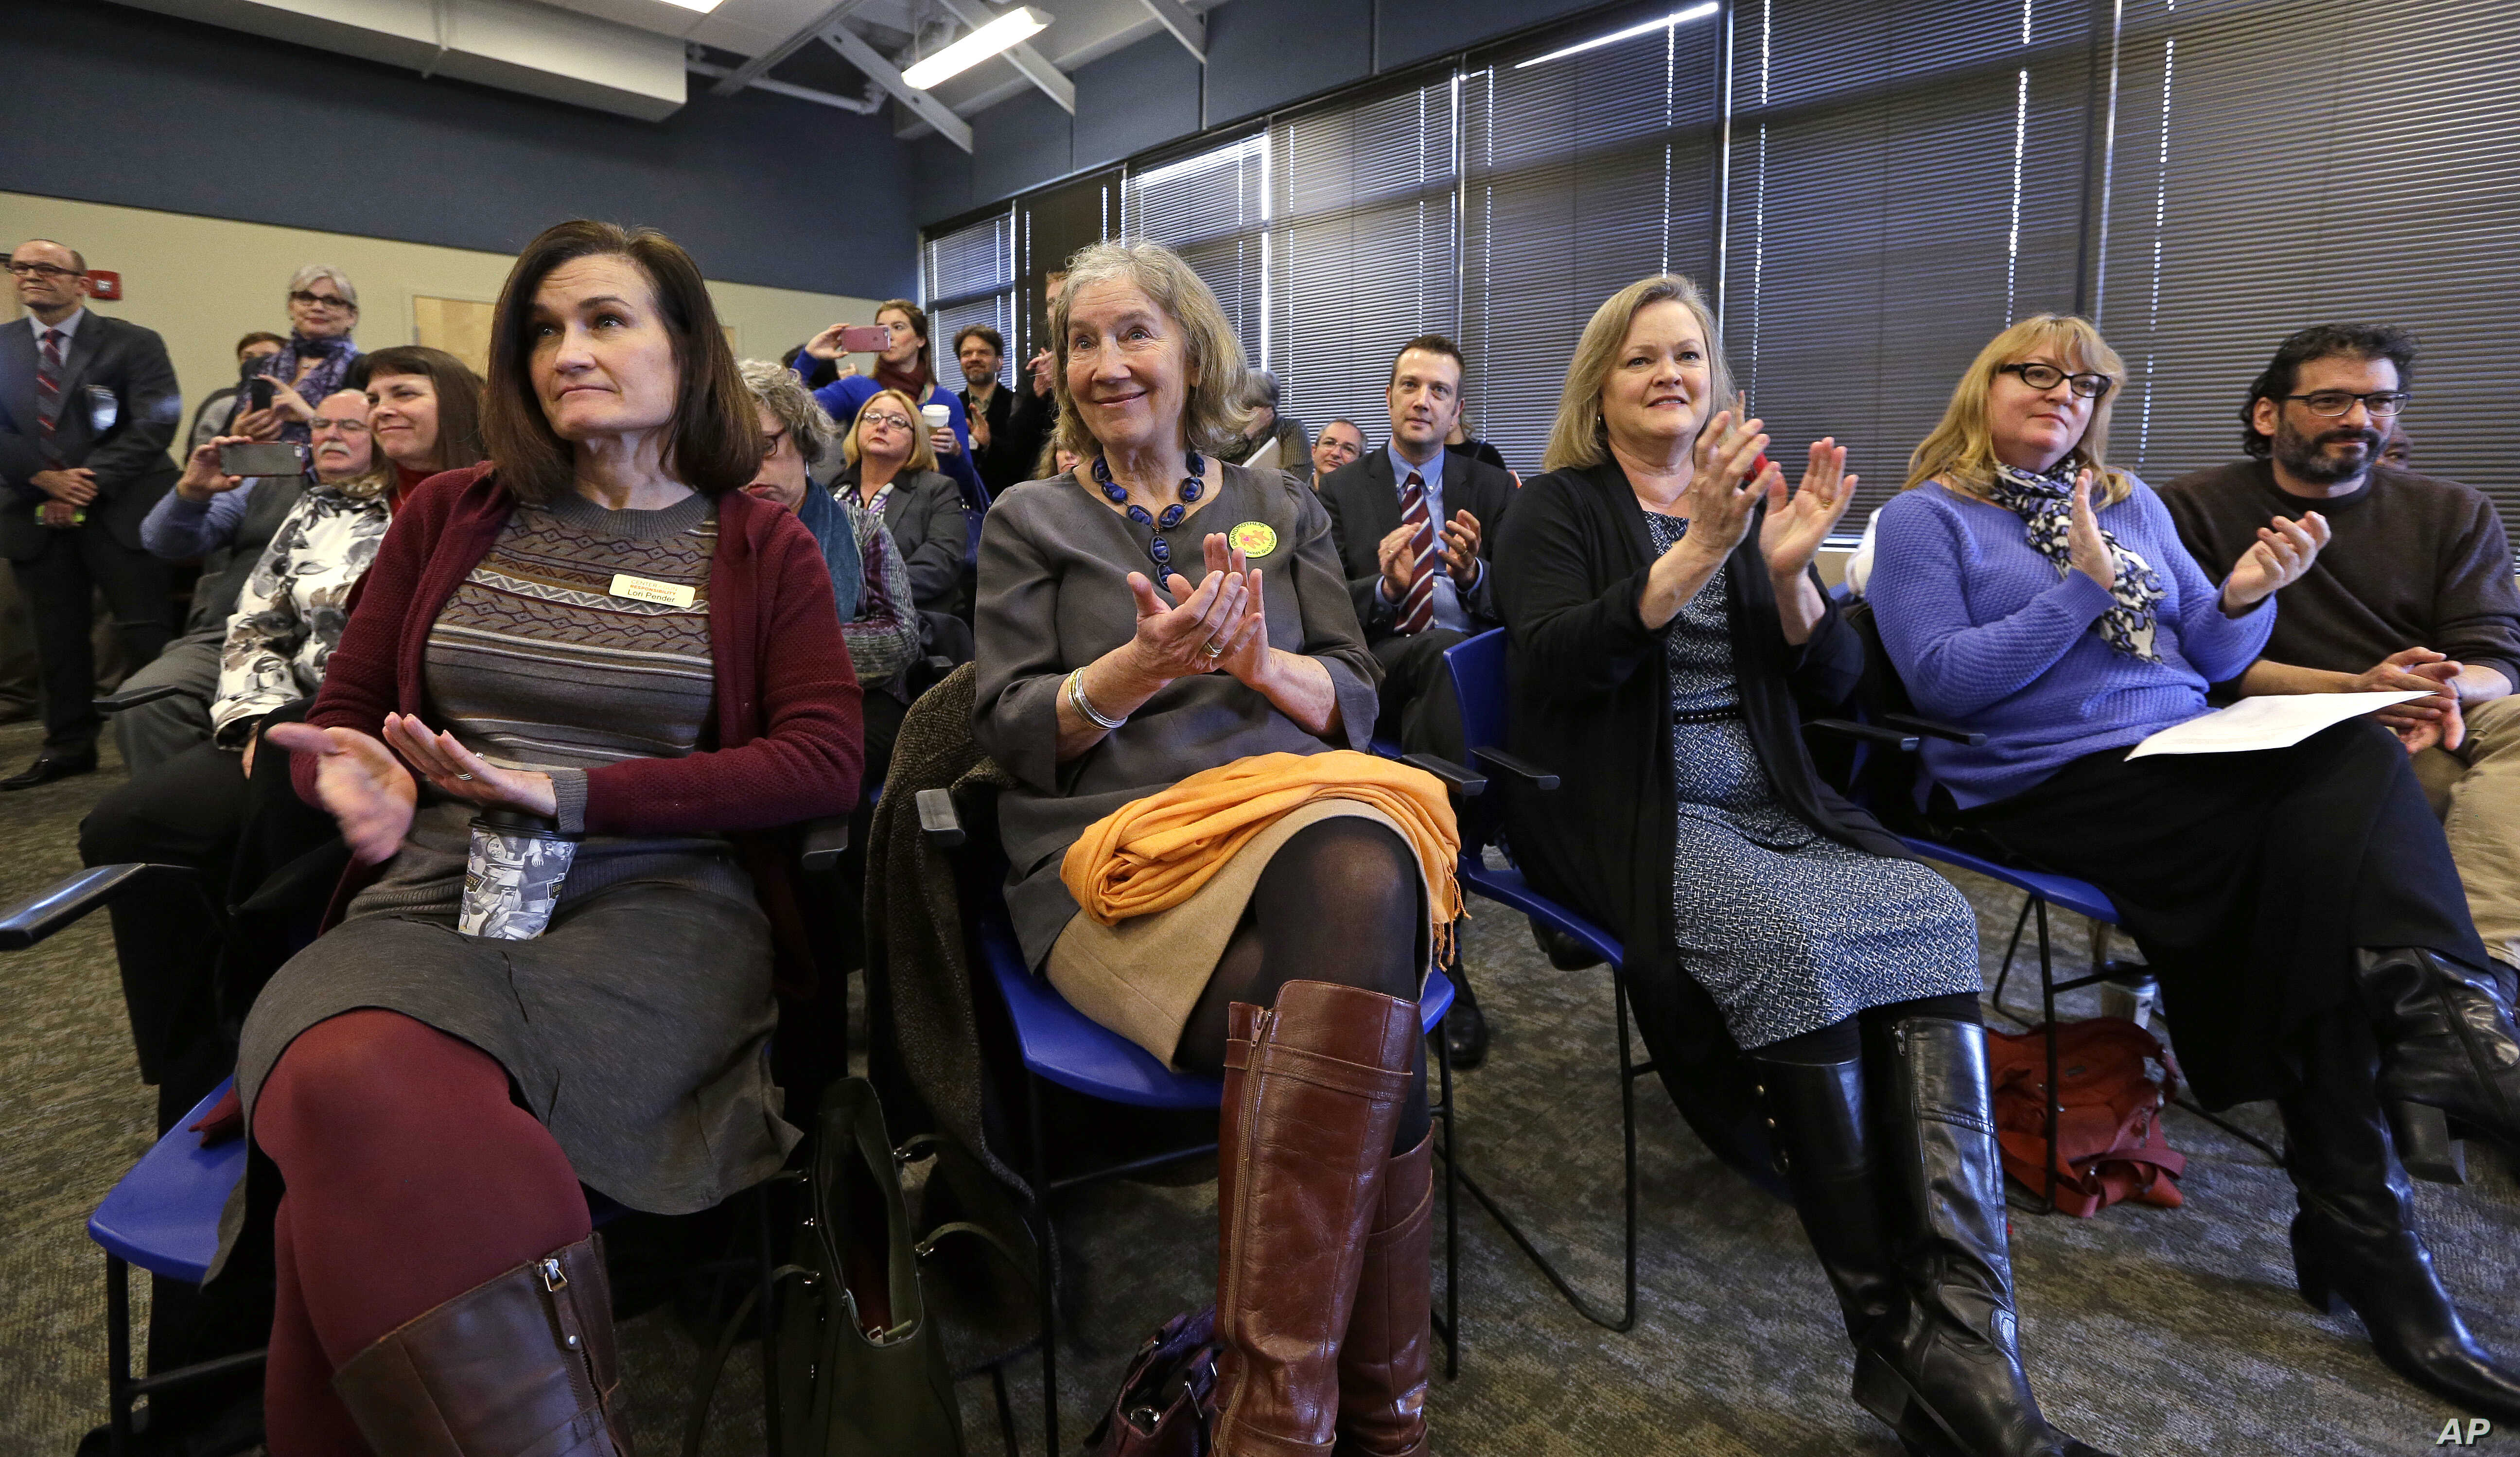 Center for Gun Responsibility board members applaud at a news conference in Burien, Wash., where Gov. Jay Inslee announced a statewide public health initiative to reduce and prevent firearm-related injuries and deaths, Jan. 6, 2016.